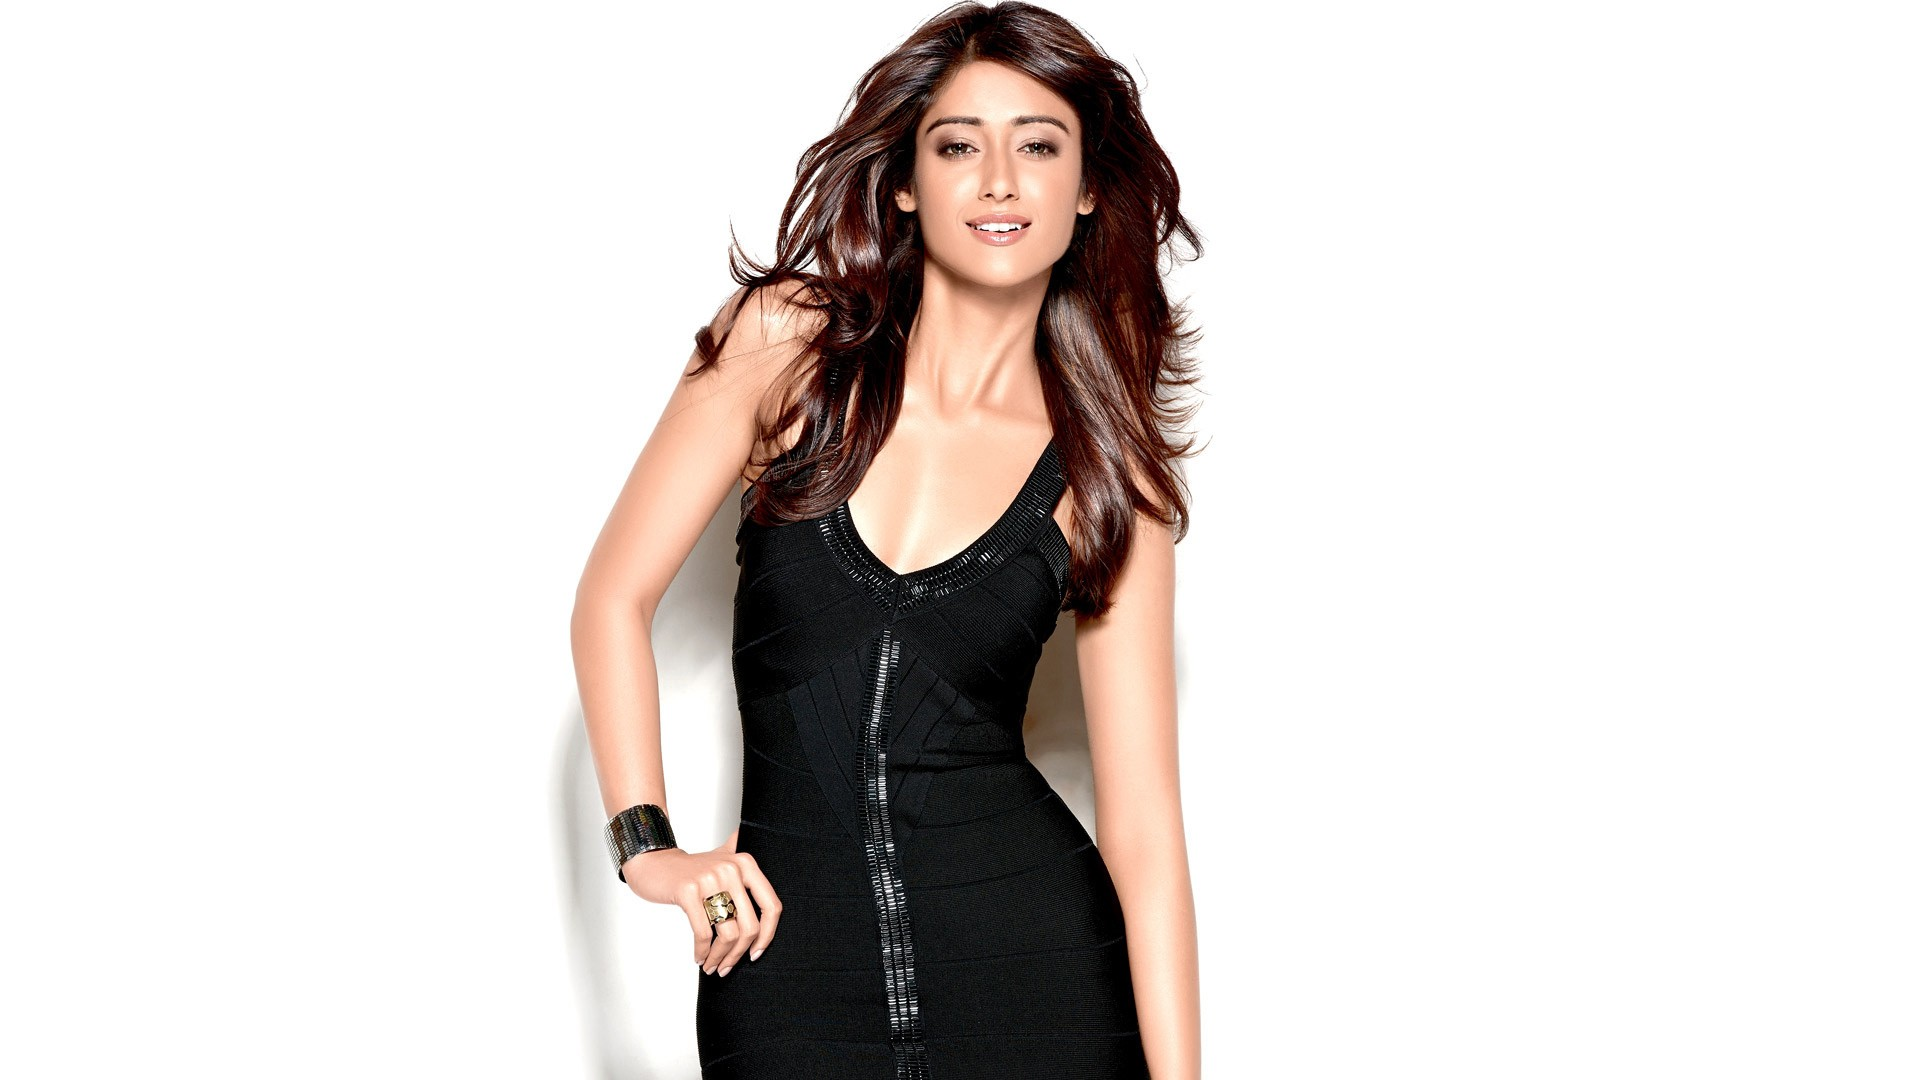 ileana dcruz 2, hd celebrities, 4k wallpapers, images, backgrounds